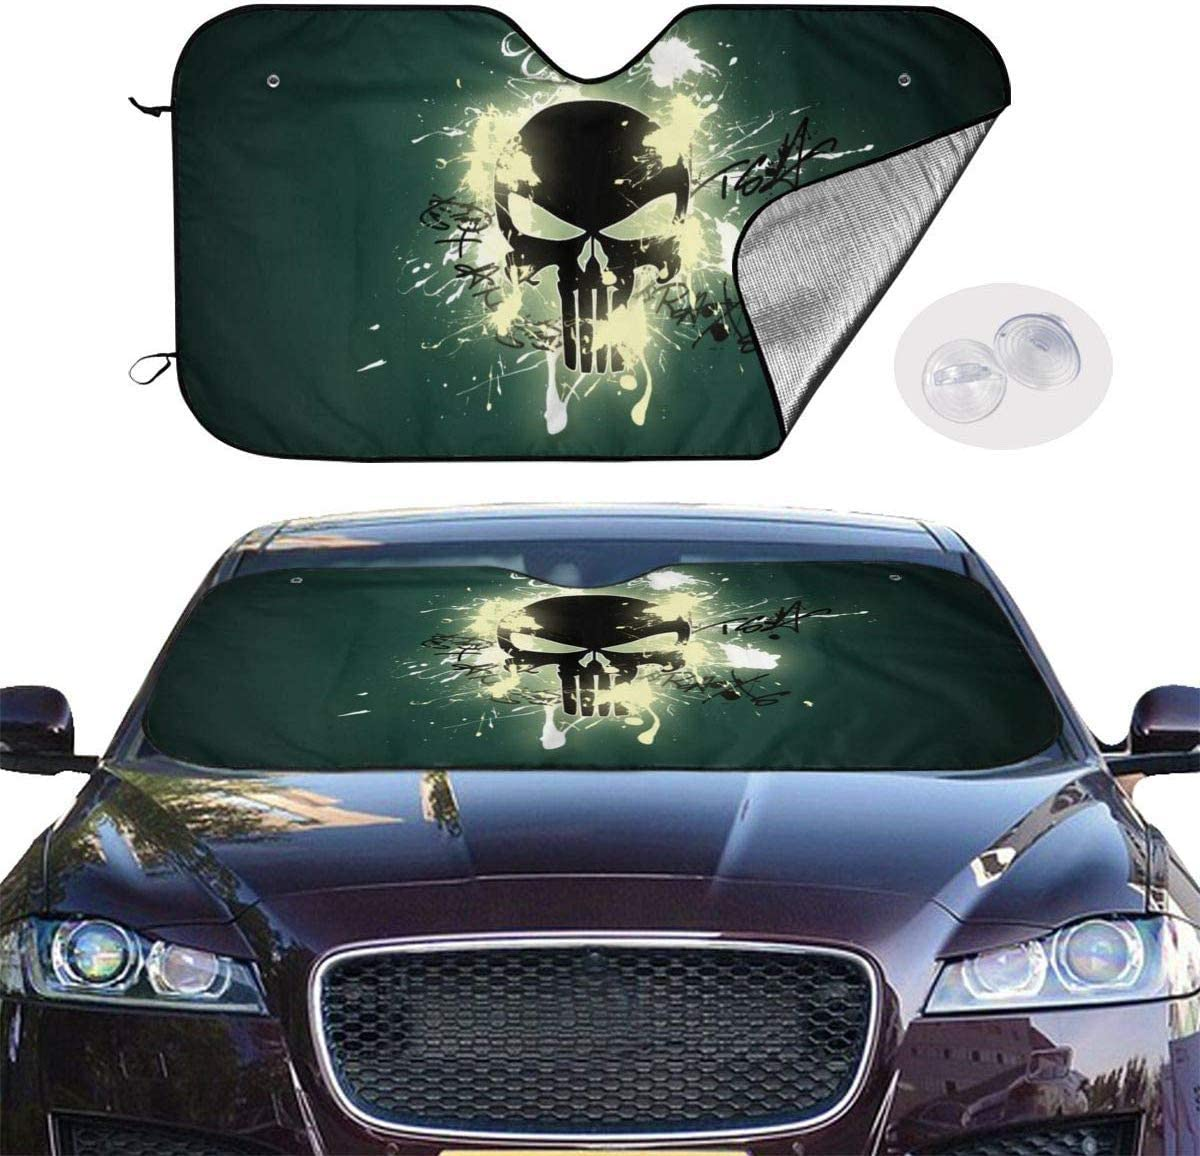 Comfort/&products American Flag Punisher Skull Car Windshield Sun Shades Universal Fit 51.2 X 27.5,Car Truck SUV Vehicle Sunshade Front Windshield Fashion